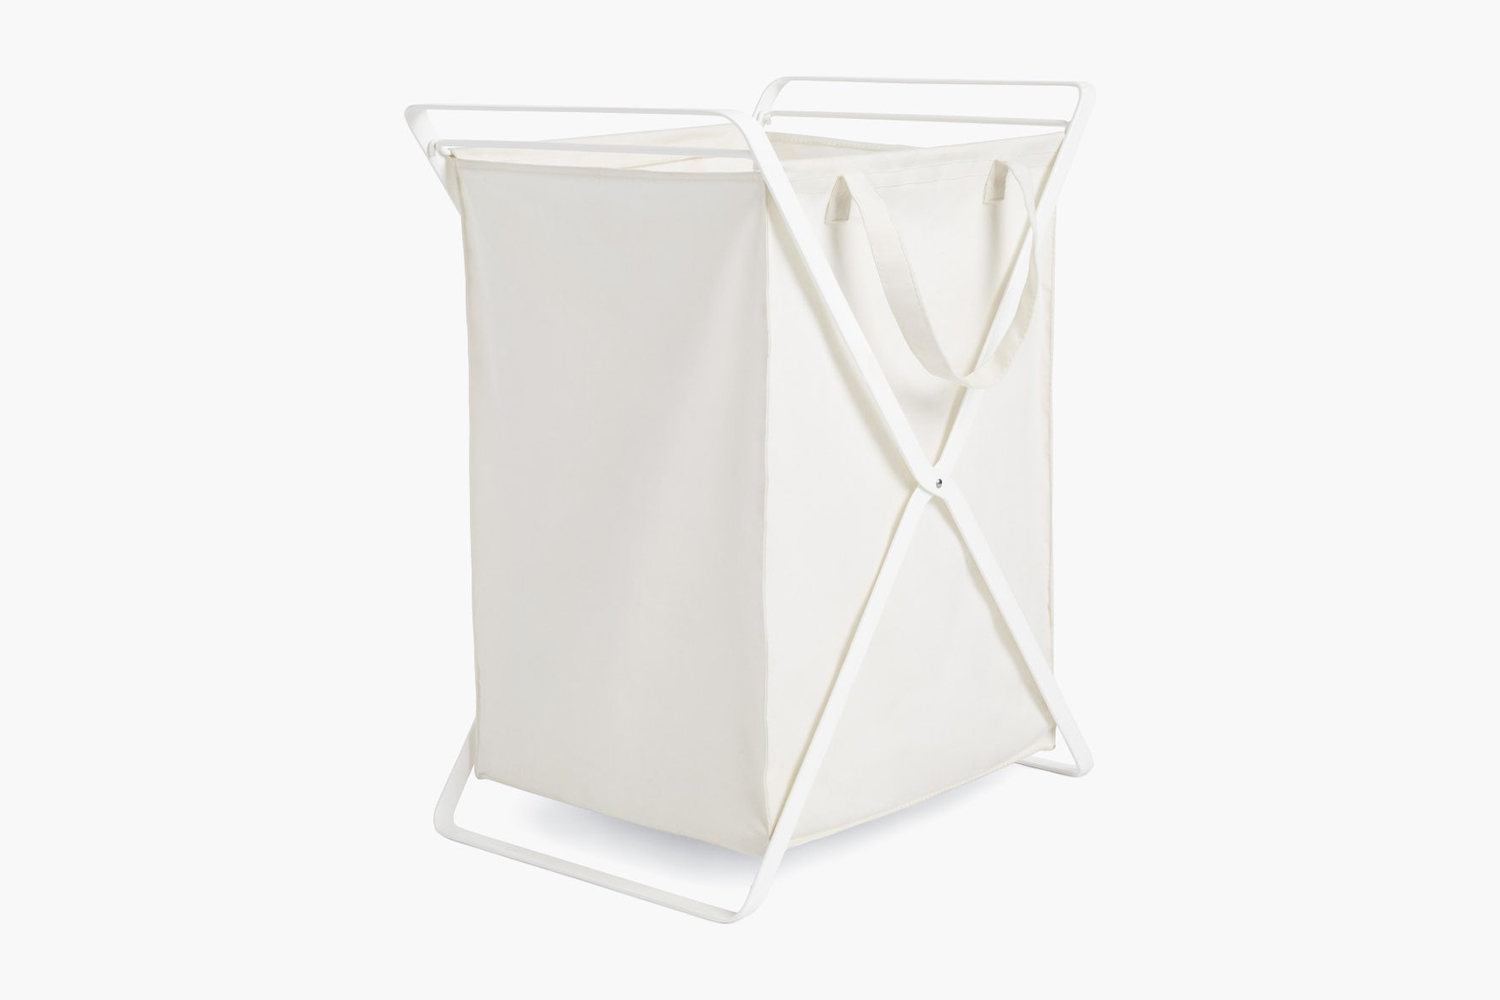 the yamazaki home tower laundry hamper is $100 at design within reach. 19